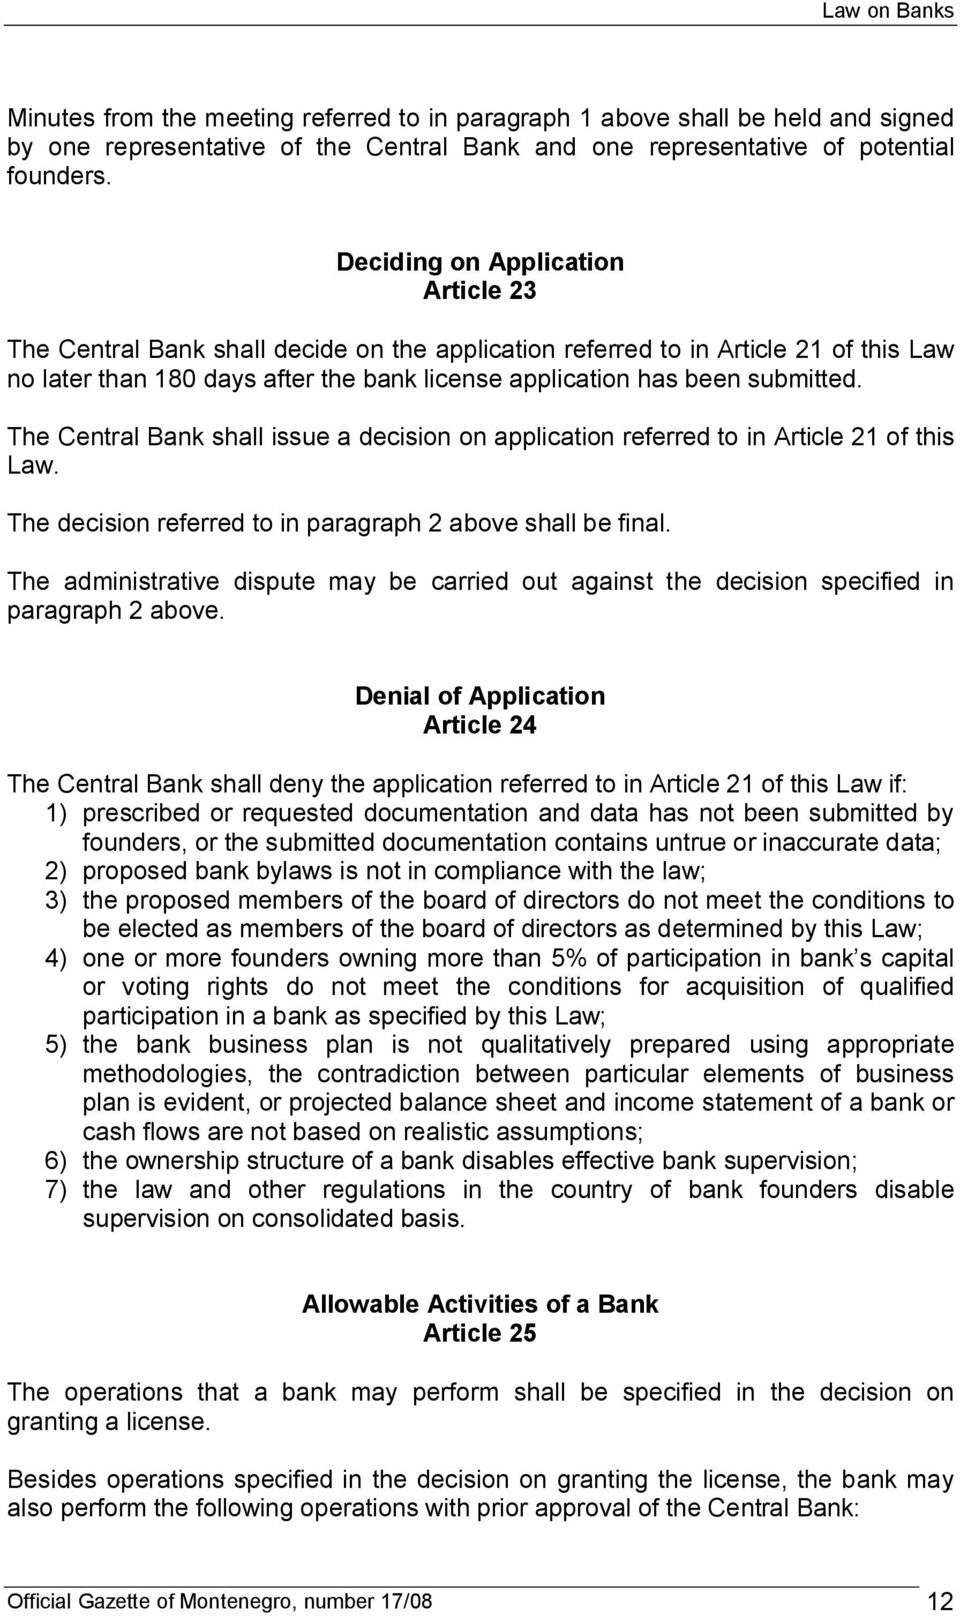 The Central Bank shall issue a decision on application referred to in Article 21 of this Law. The decision referred to in paragraph 2 above shall be final.